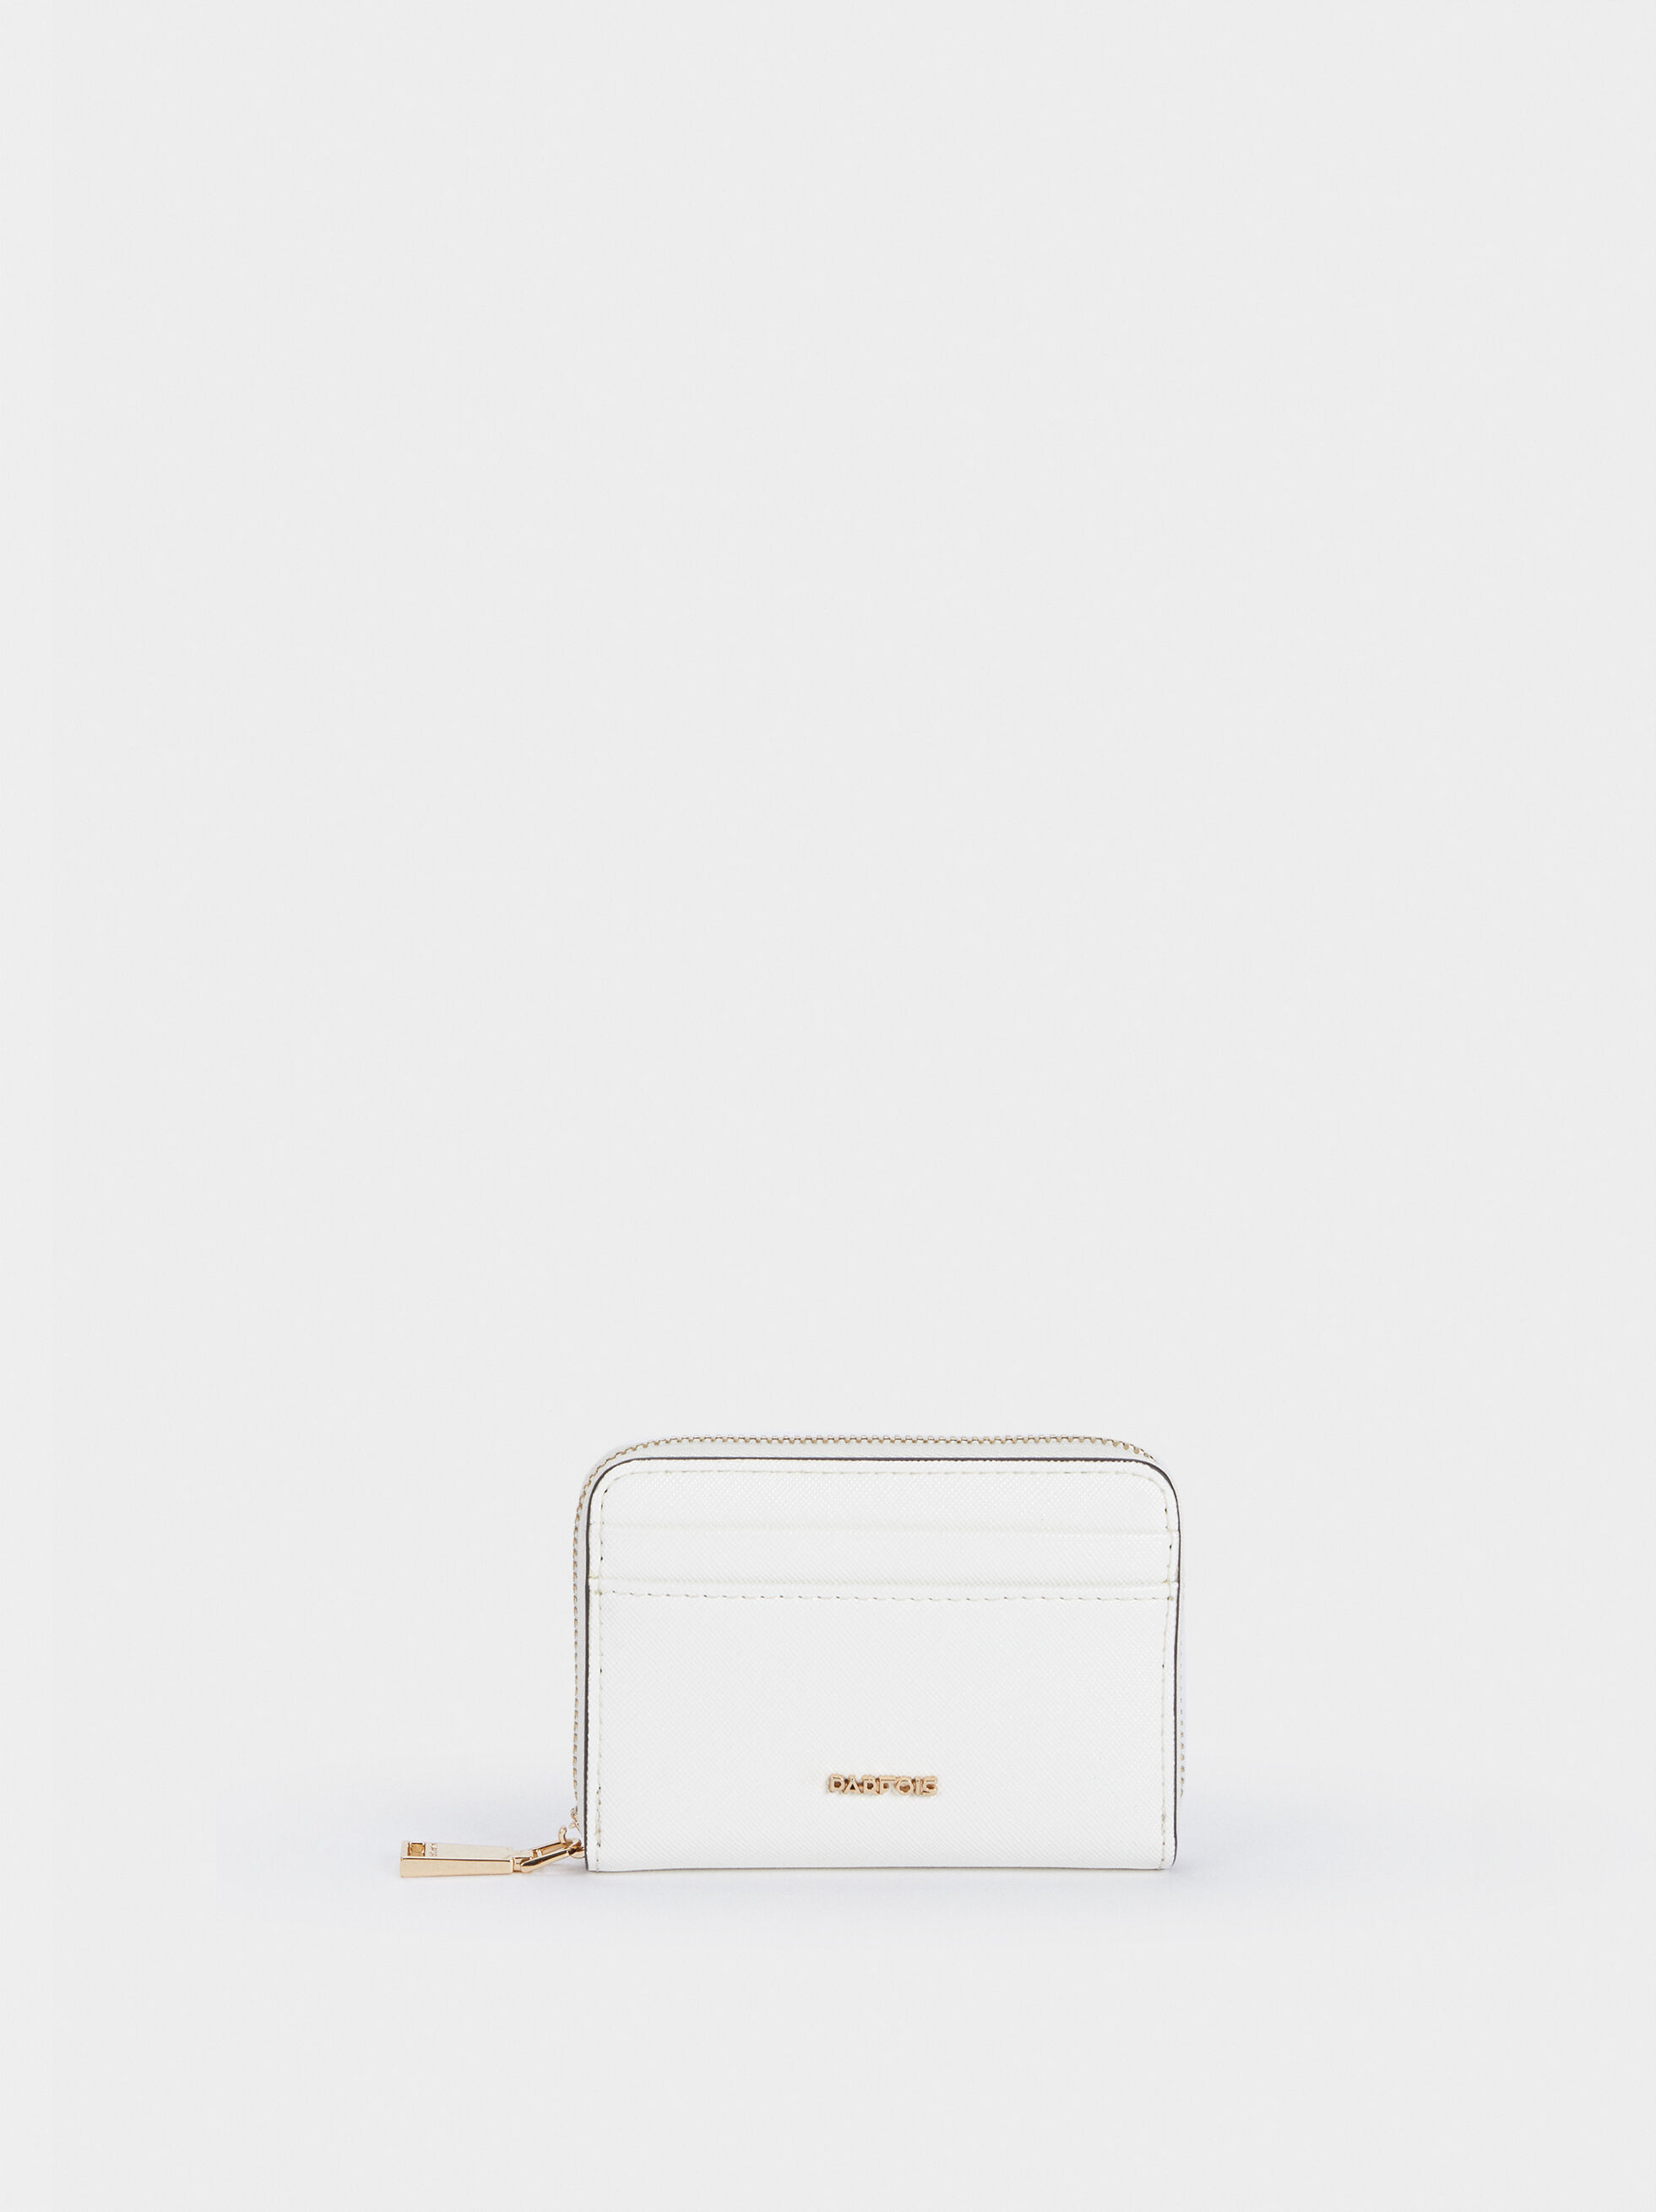 Compact Zipped Purse, White, hi-res